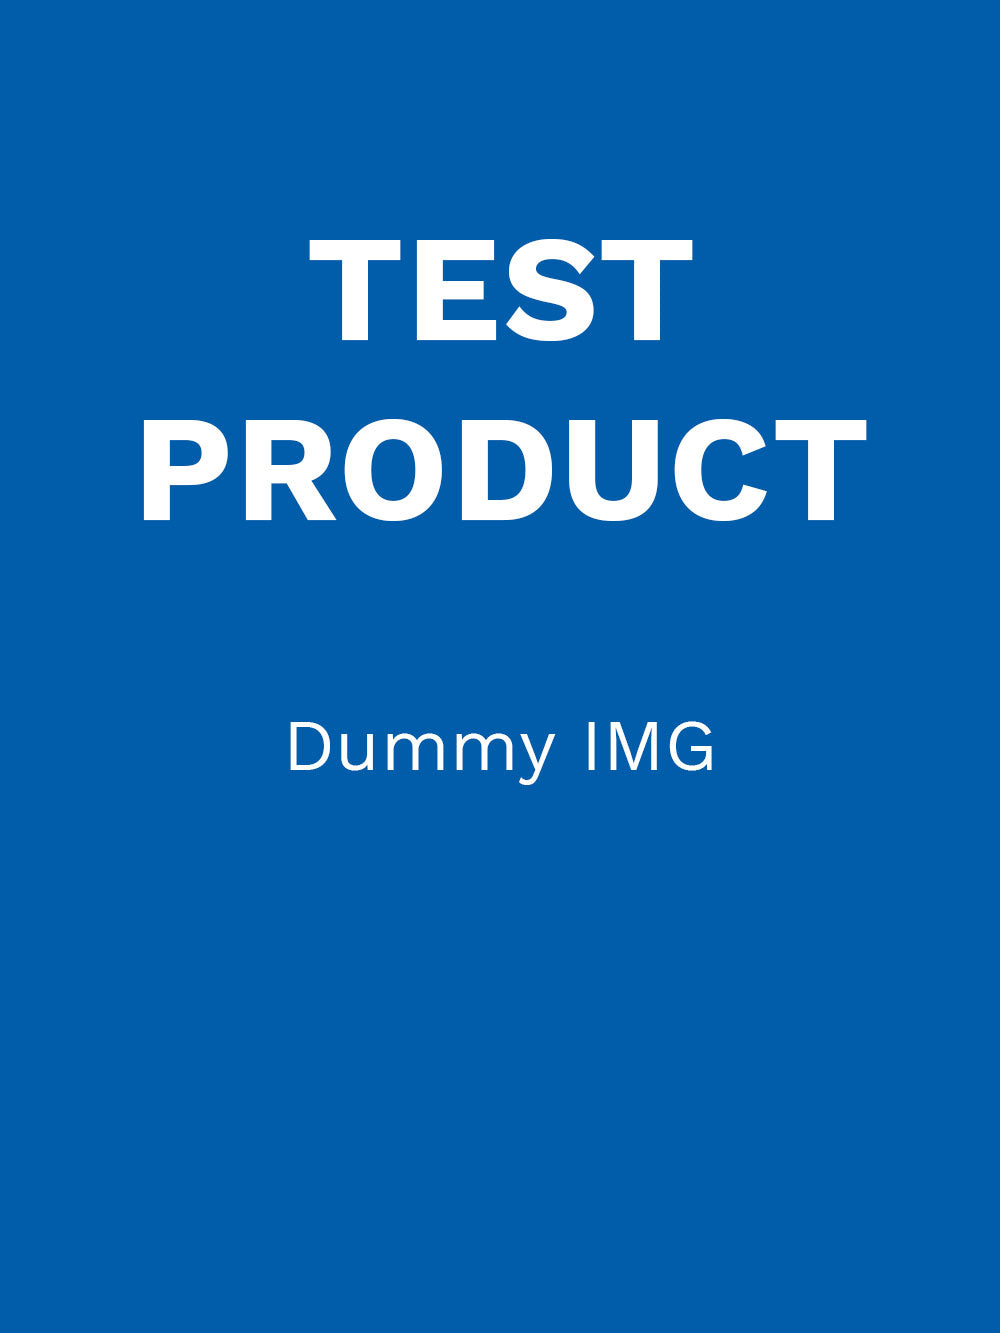 Test Digital Update Product